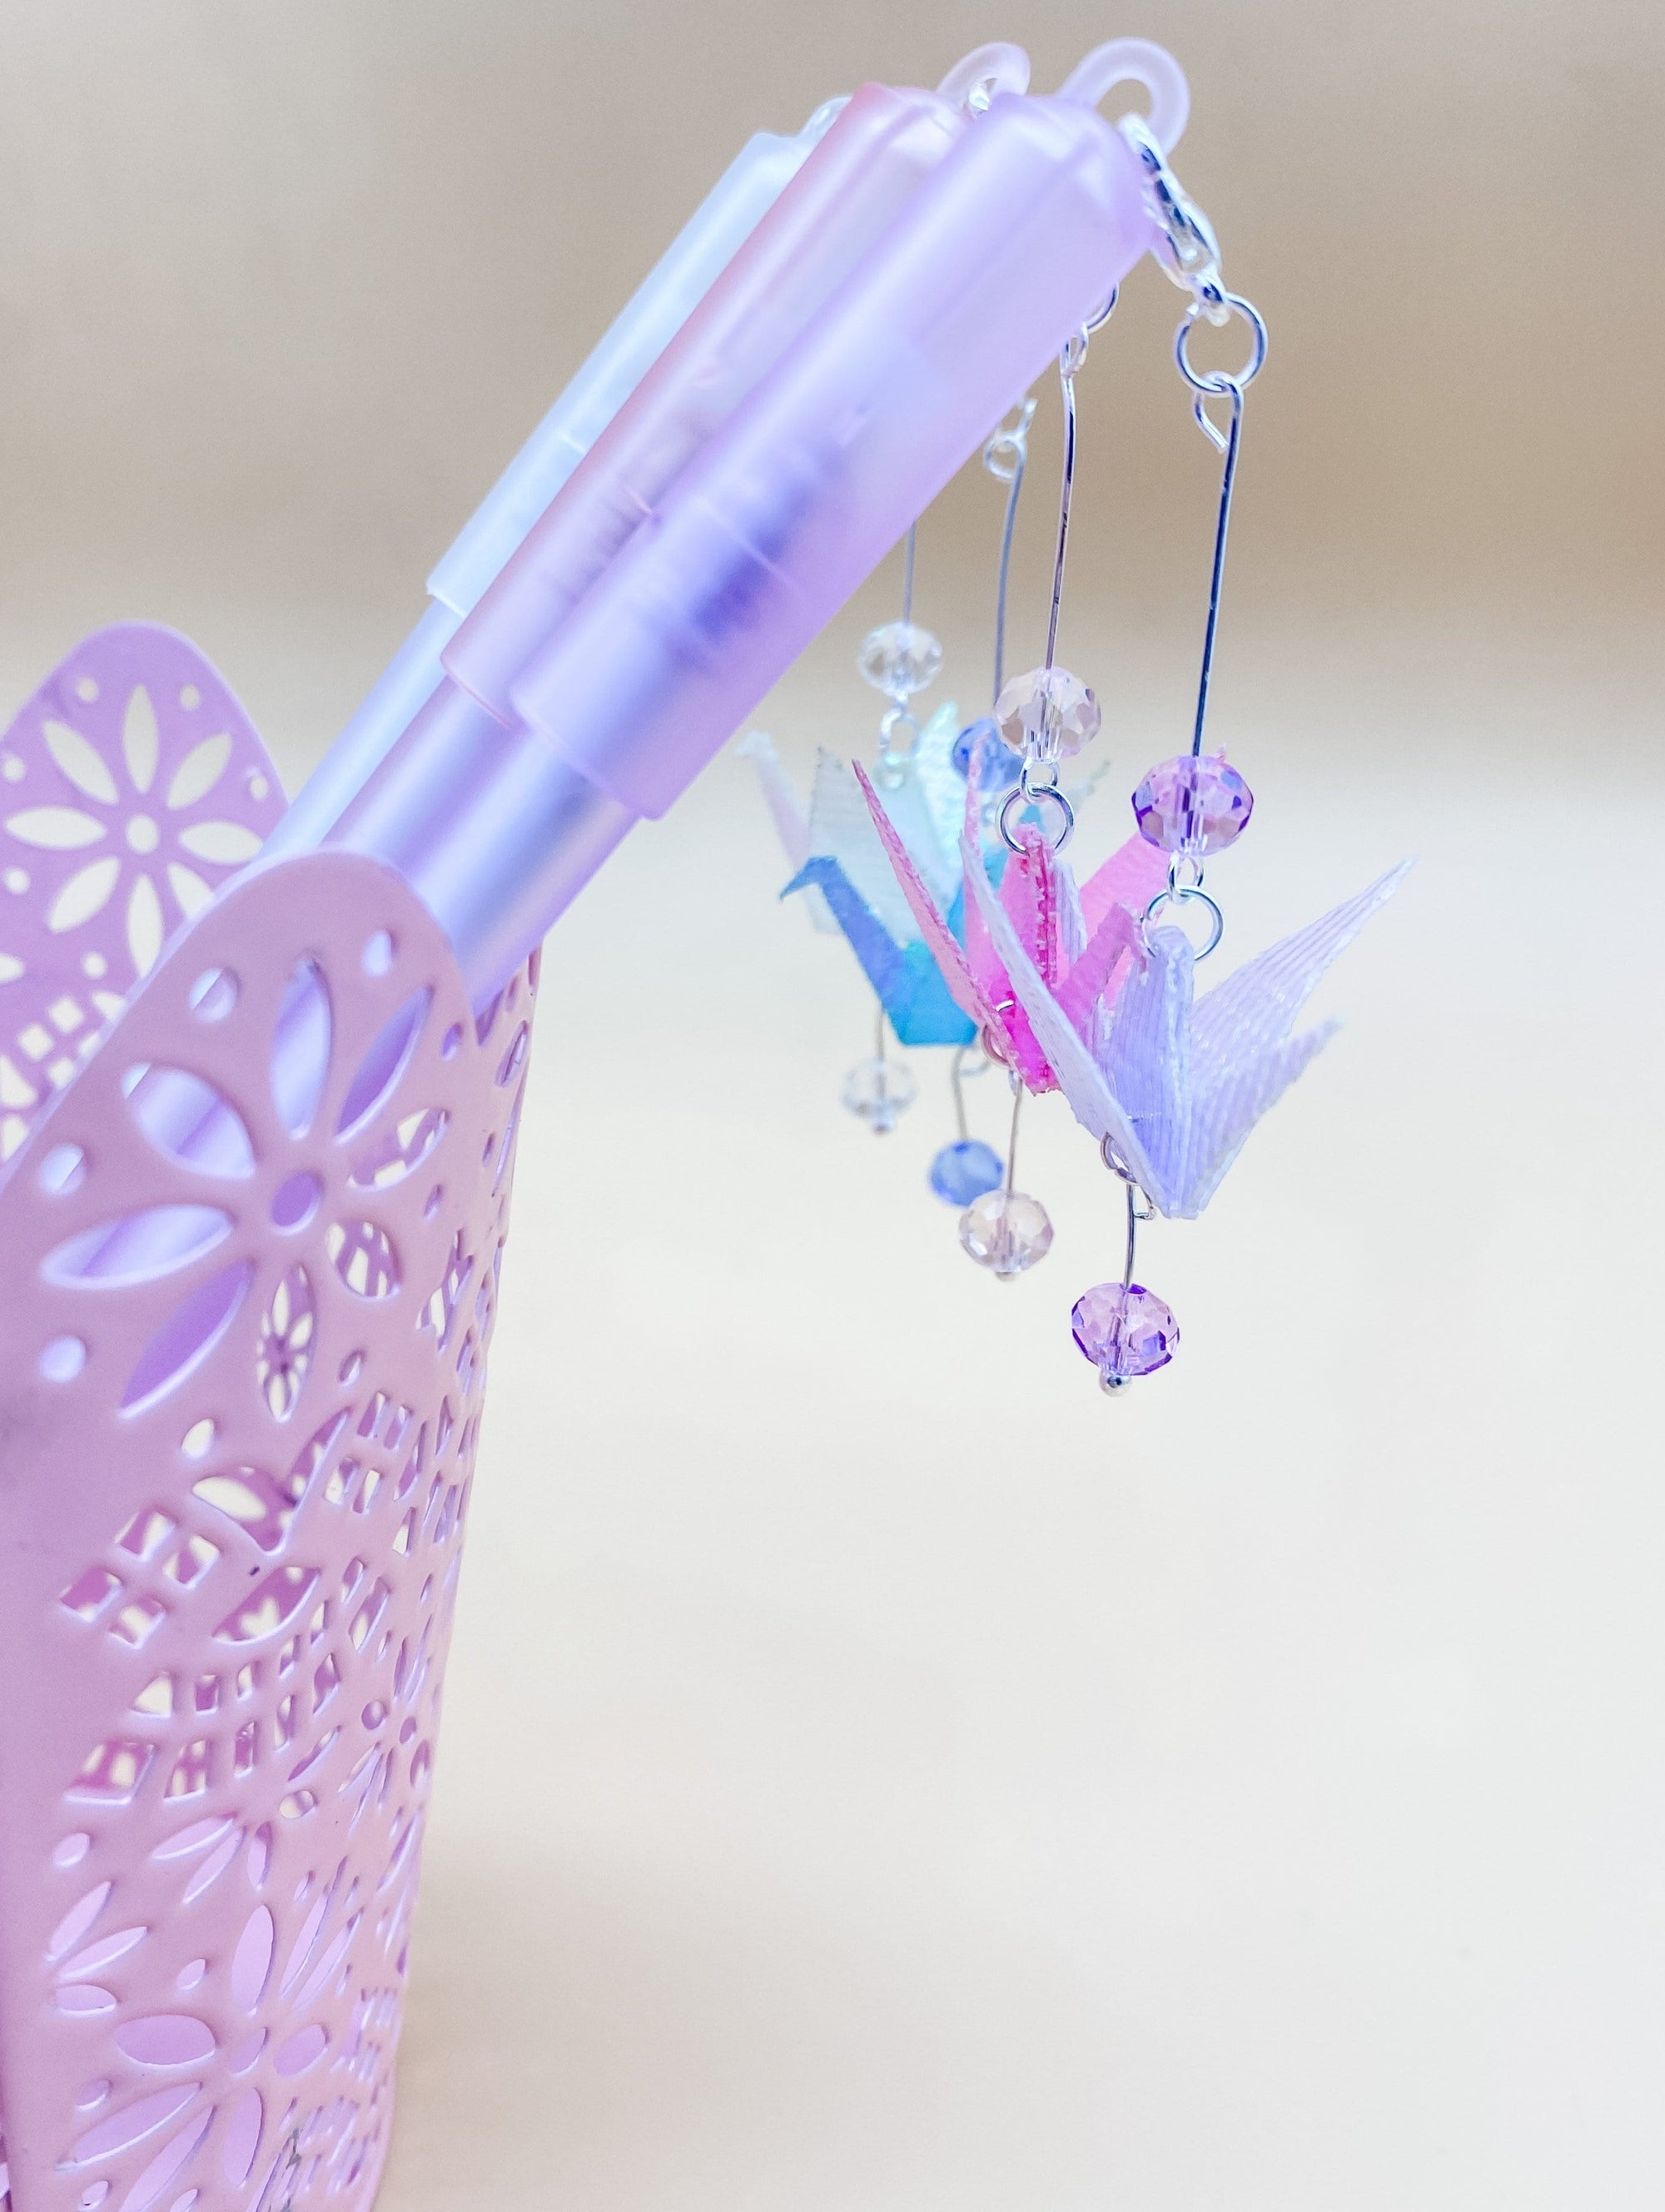 Close up of four pens sitting in a pink metal cup. Only the tops of the pens are visible. They have origami cranes and beads hanging from the caps.